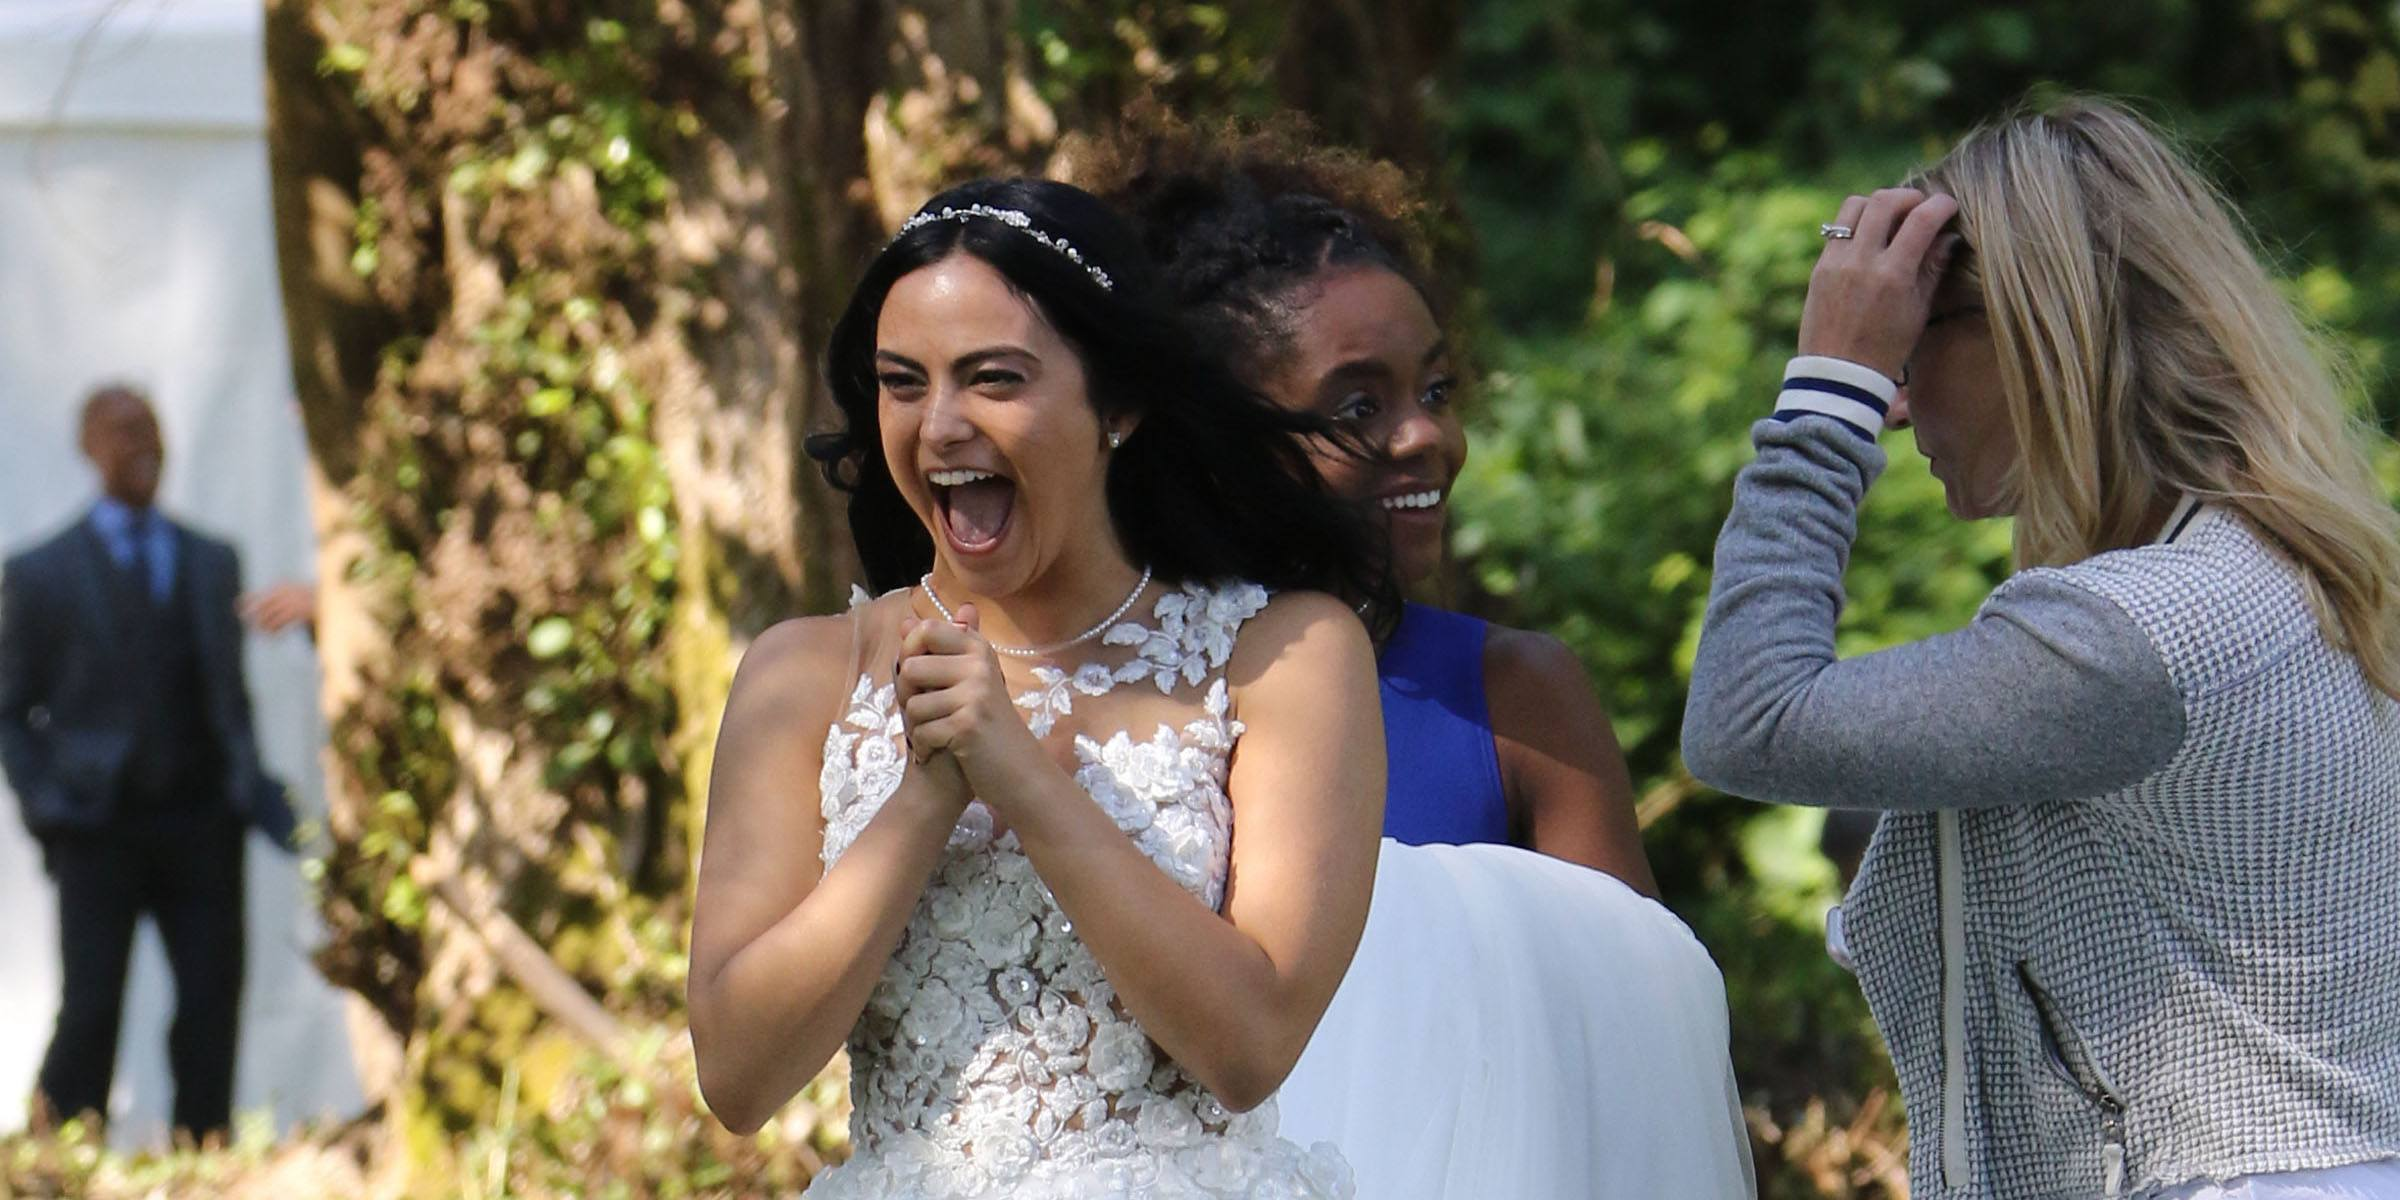 'Riverdale' films wedding scene at Barnet Marine Park (PHOTOS)